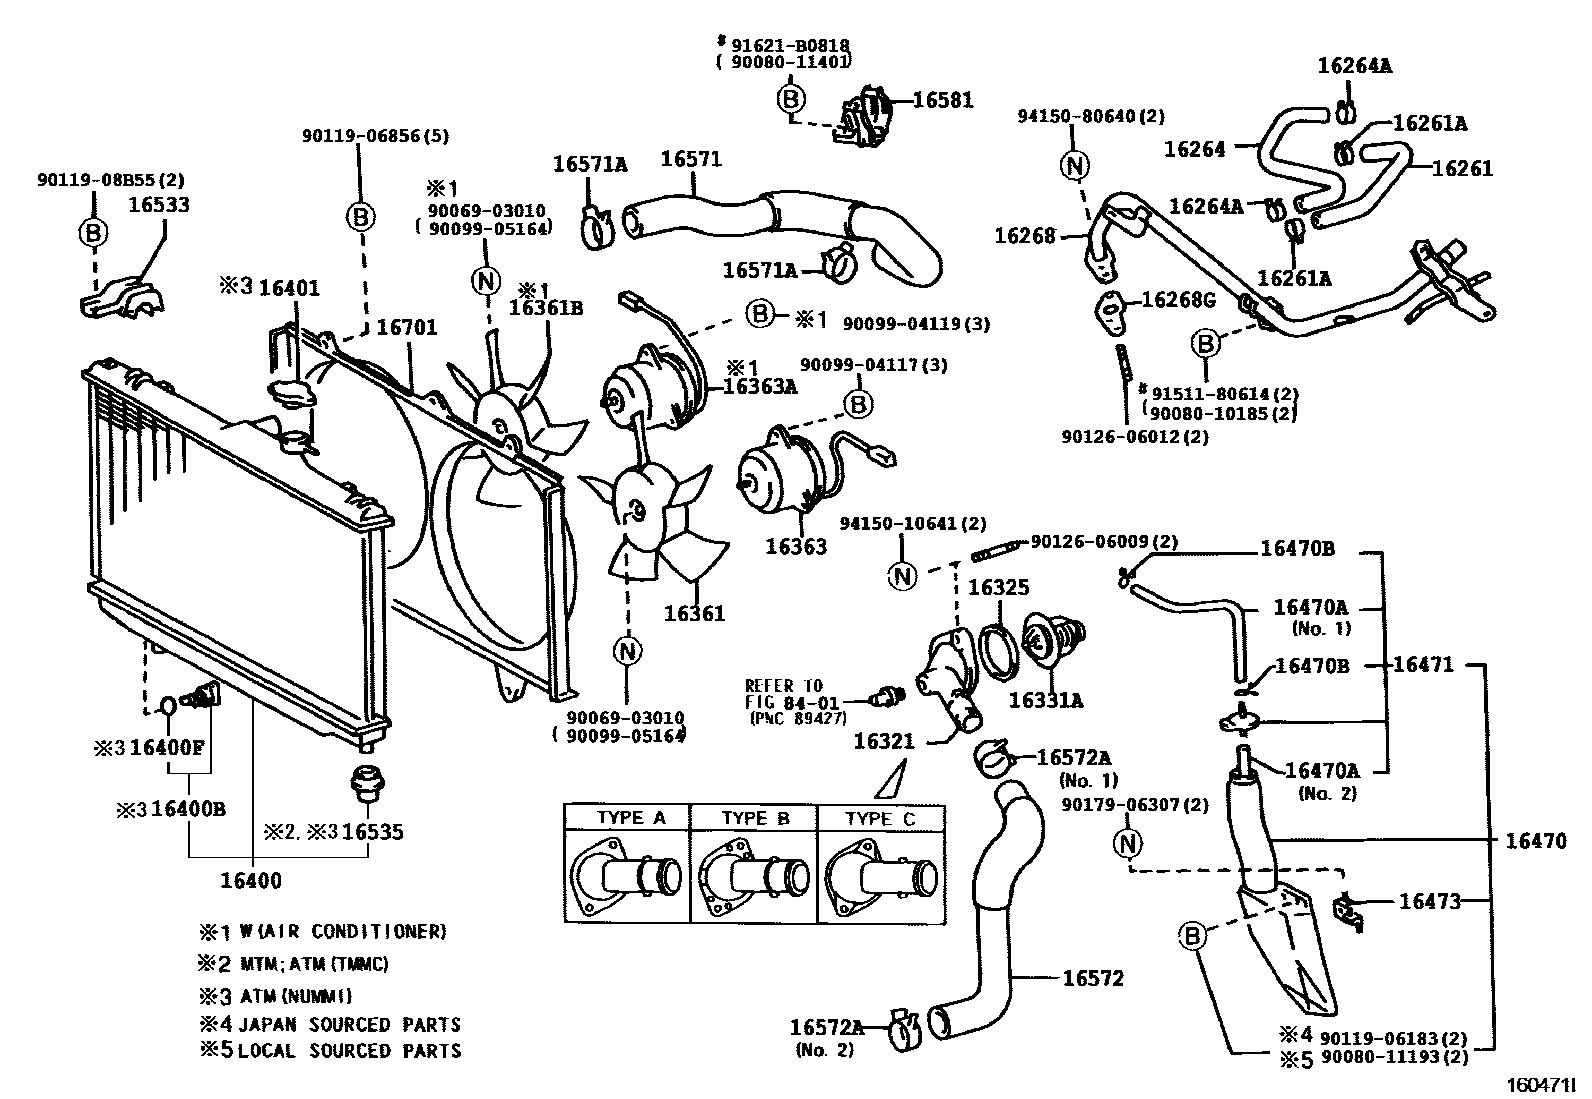 2y5e7 1999 Wv Passat It Oil Leak Top Oil Filter further Technik Plan also Mbe 900 Fuel System Diagram moreover Wiring Diagram For A Mercedes Benz C300 moreover Coolant Temperature Sensor Location For 2002 Ford F150. on vw beetle oil pressure sensor